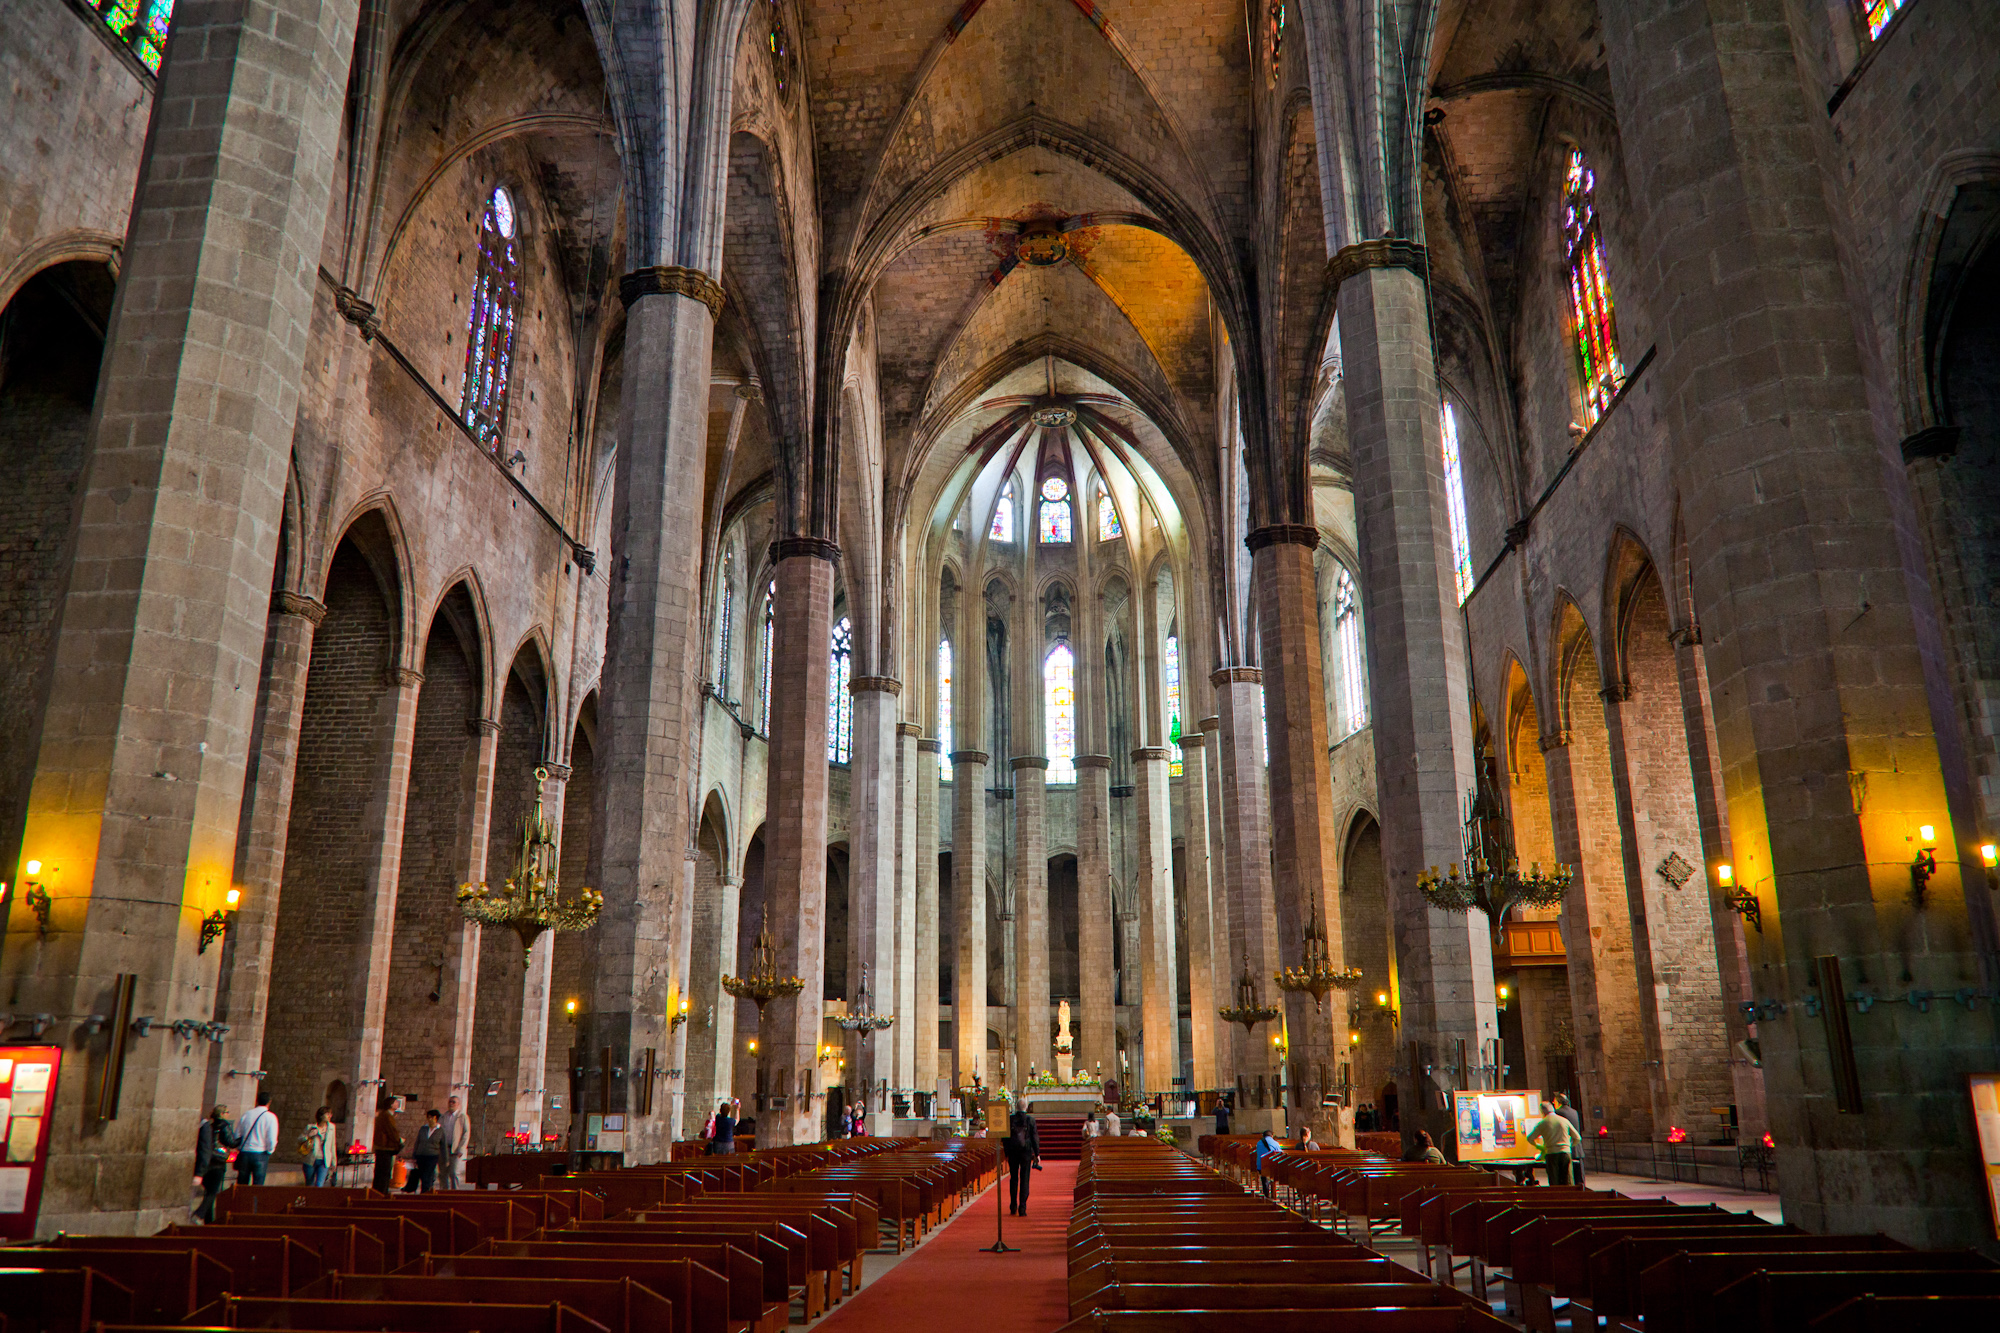 Inside the Cathedral Santa Maria del Mar.  It's one of the most beautiful cathedrals I've ever seen.